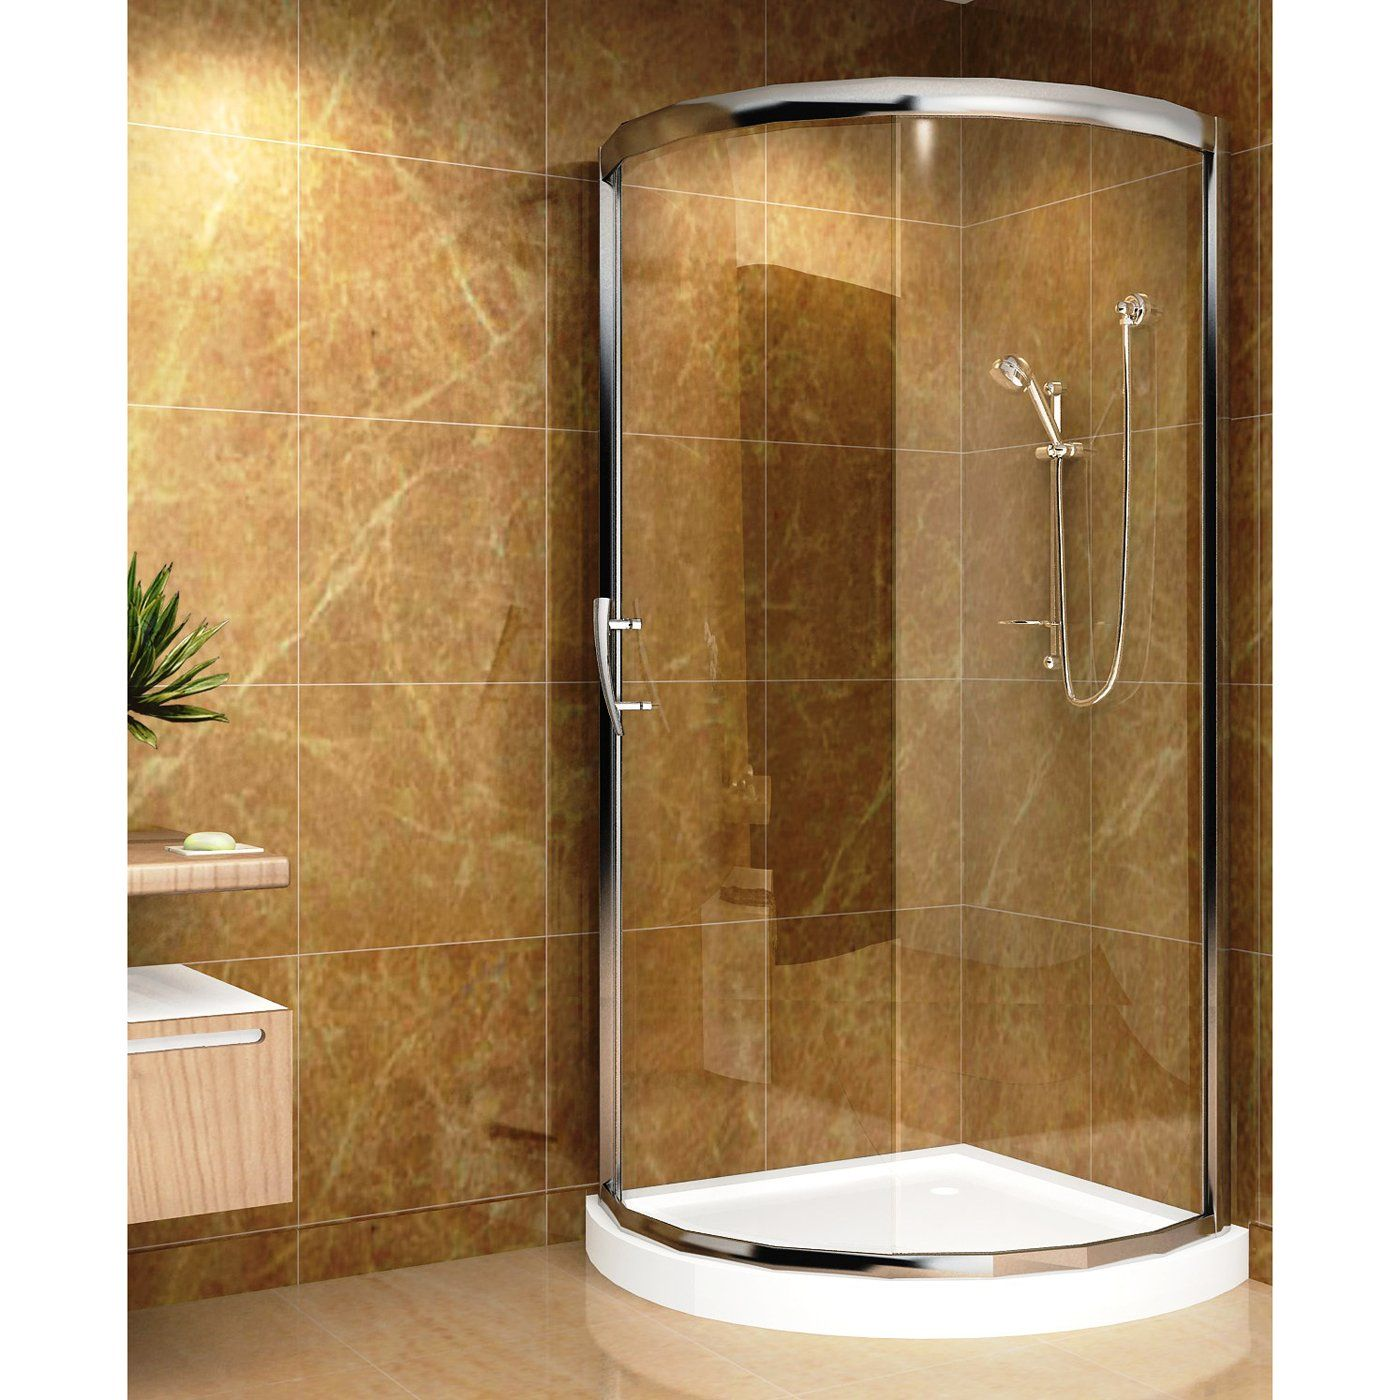 Aston Global SD908-III Round Shower Enclosure with Acrylic Shower ...